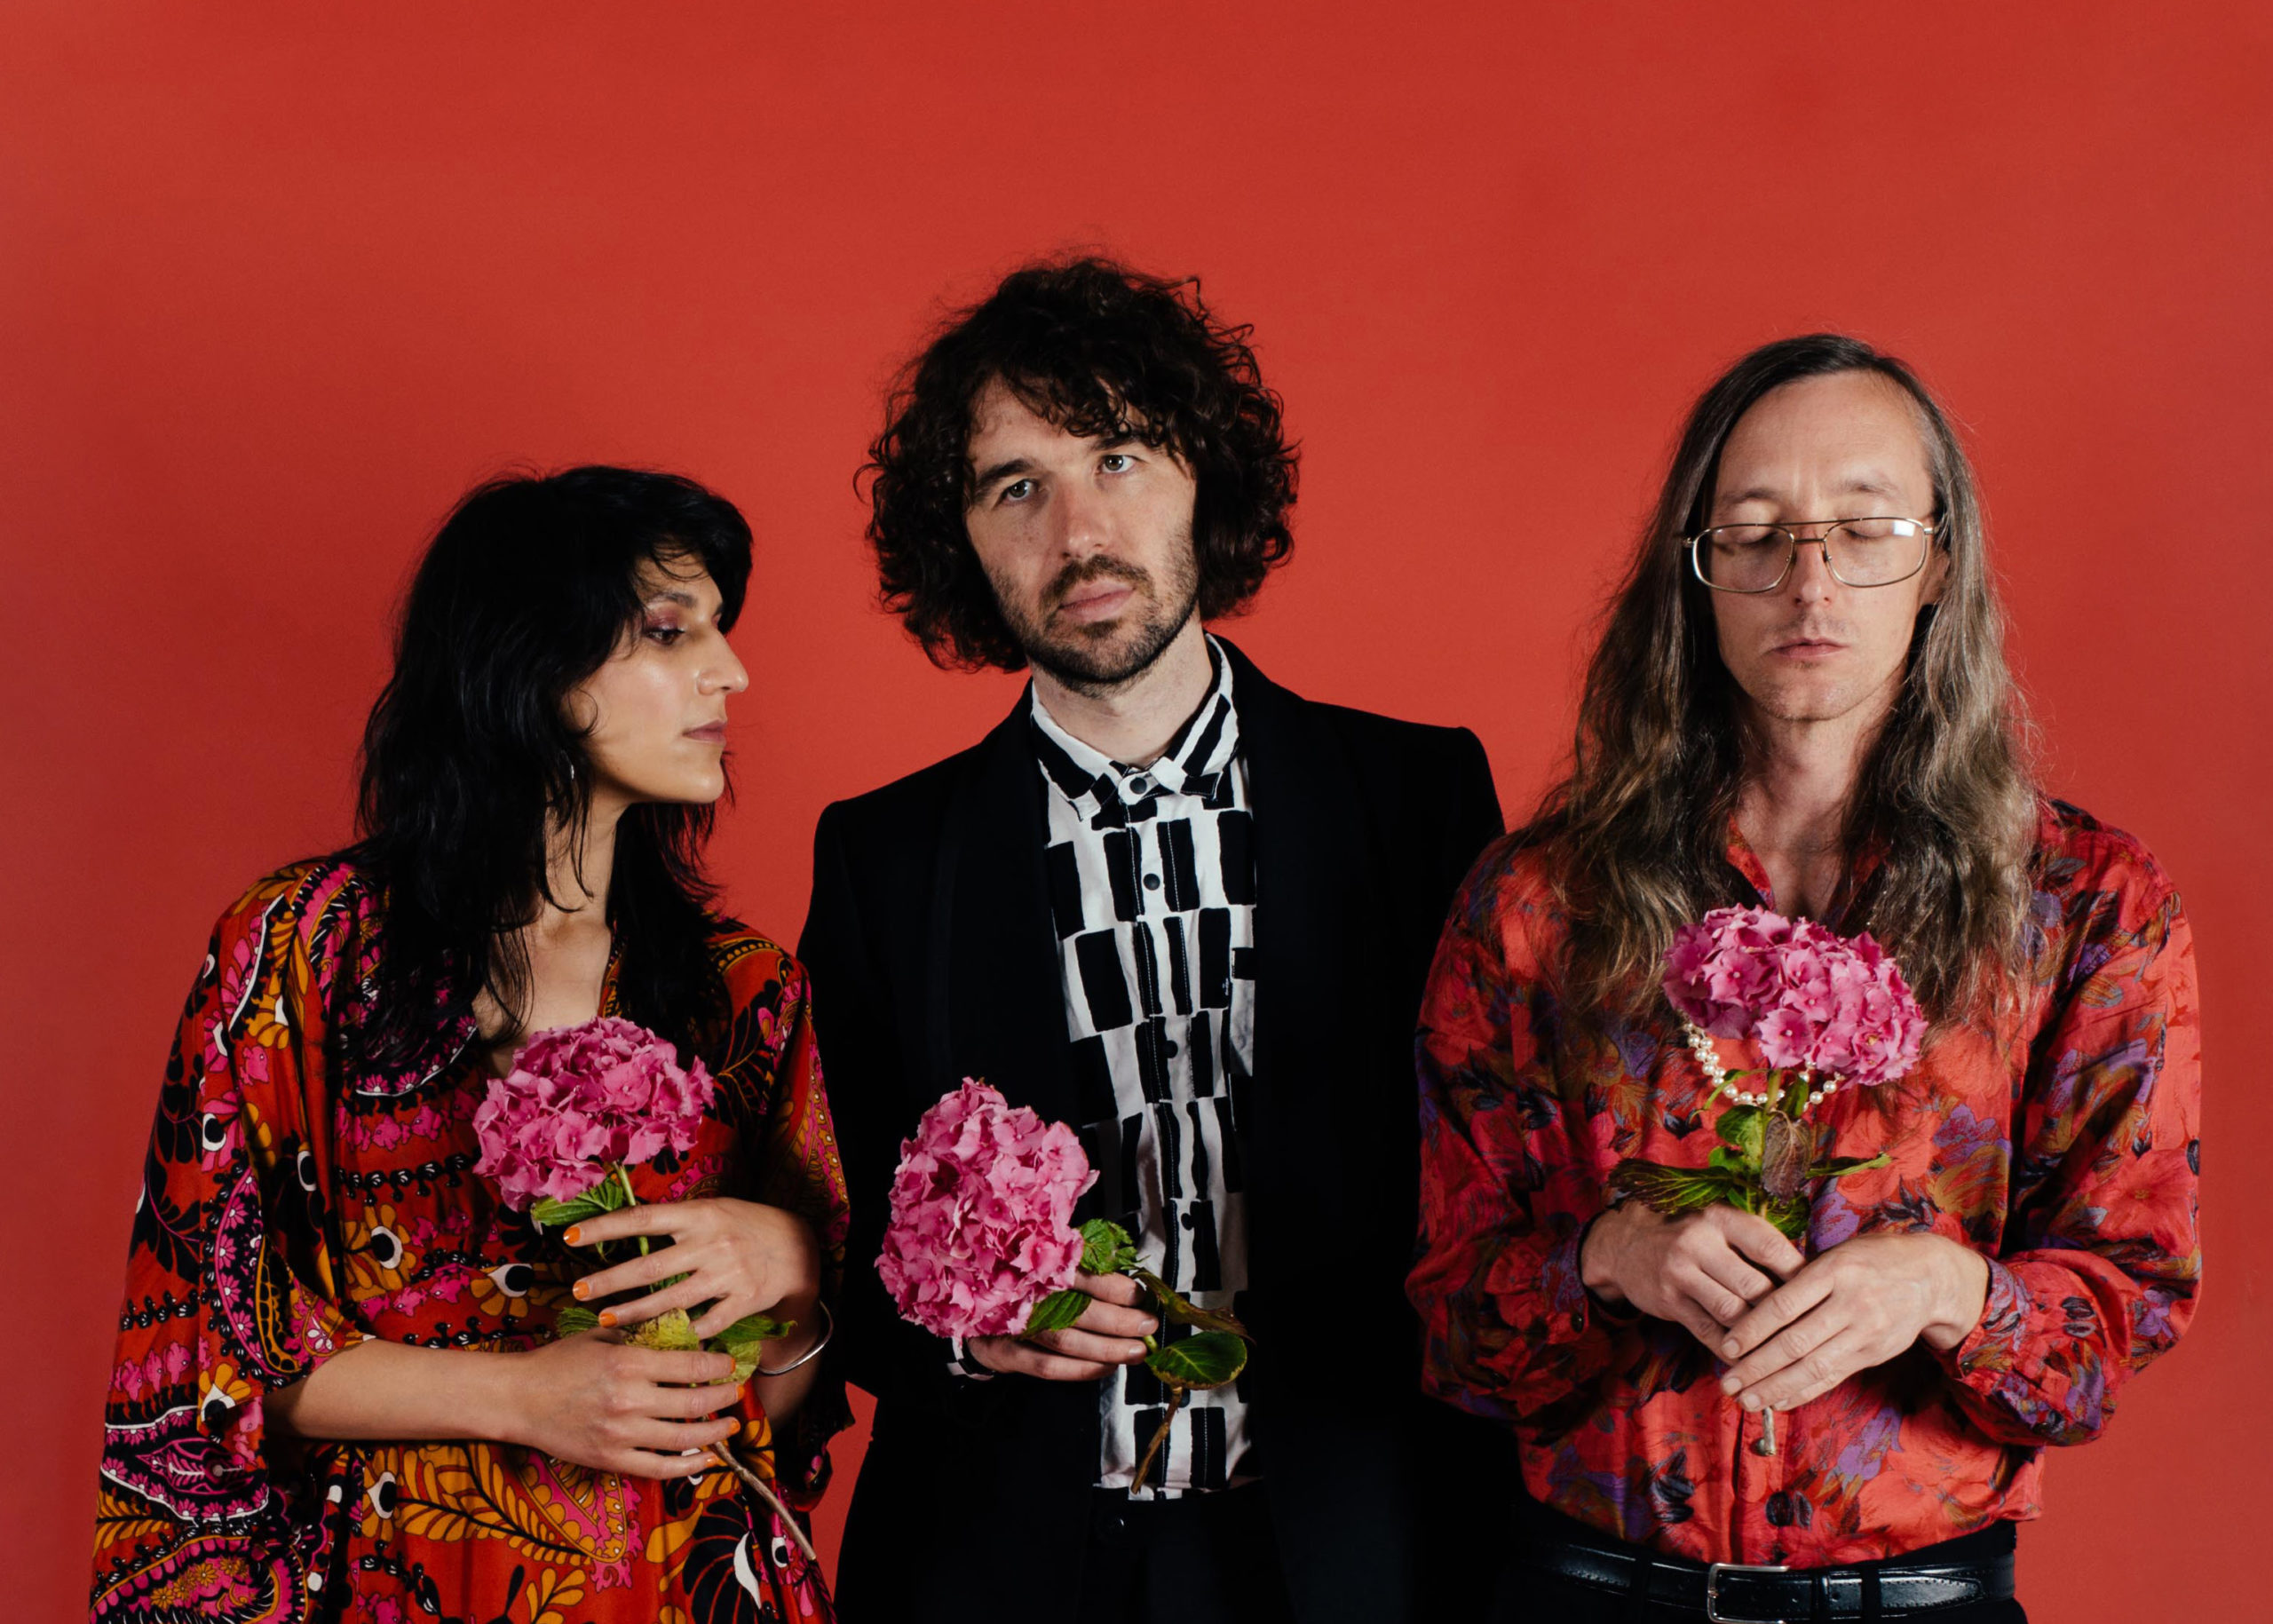 NEWS: Islet announce details of new album Eyelet & Share 'Good Grief' Video